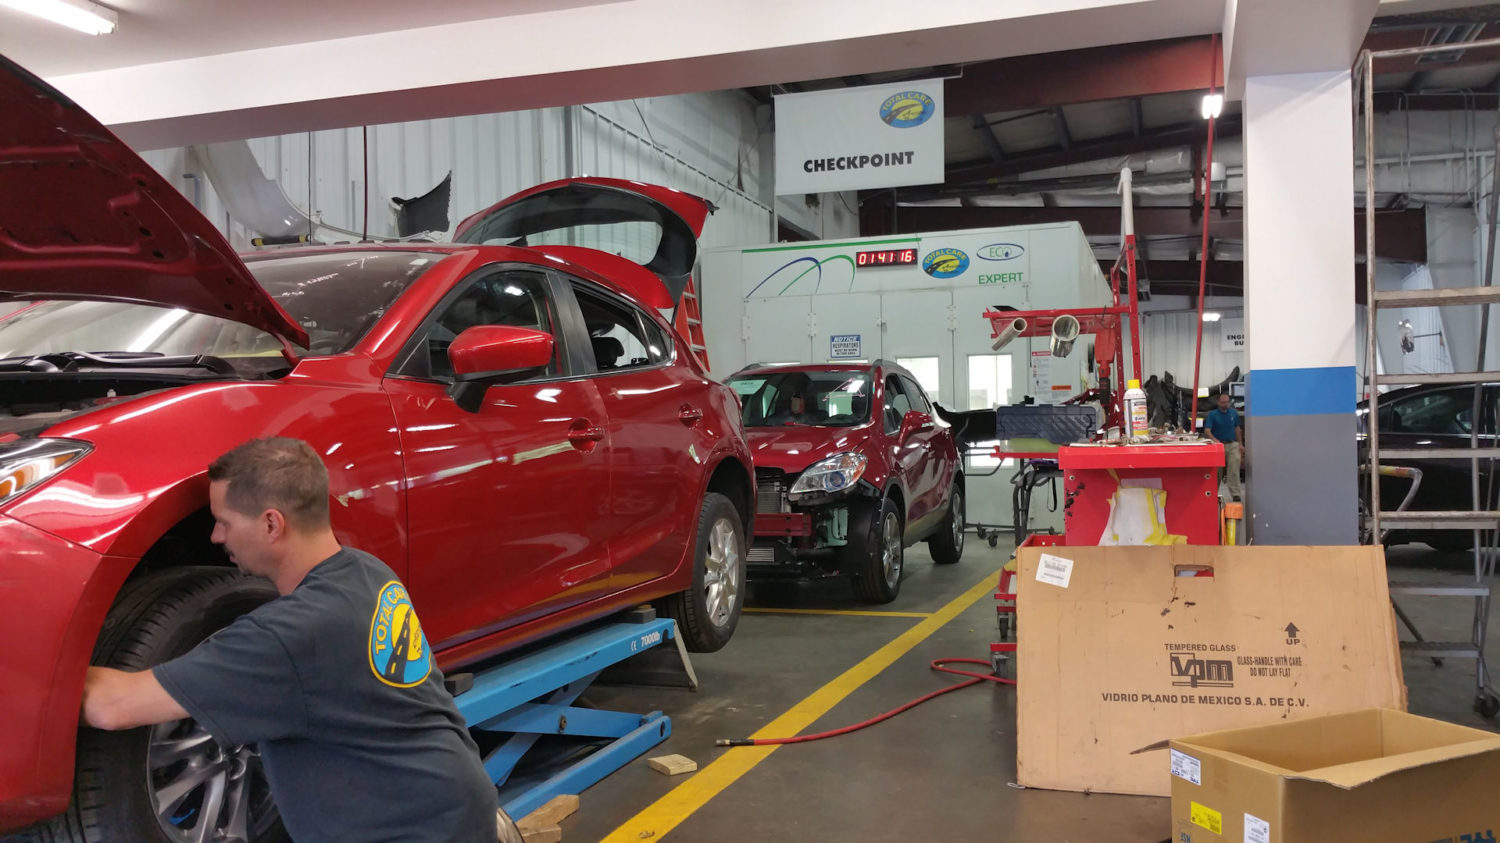 Total Care Accident Repair Raynham Auto Body Shop